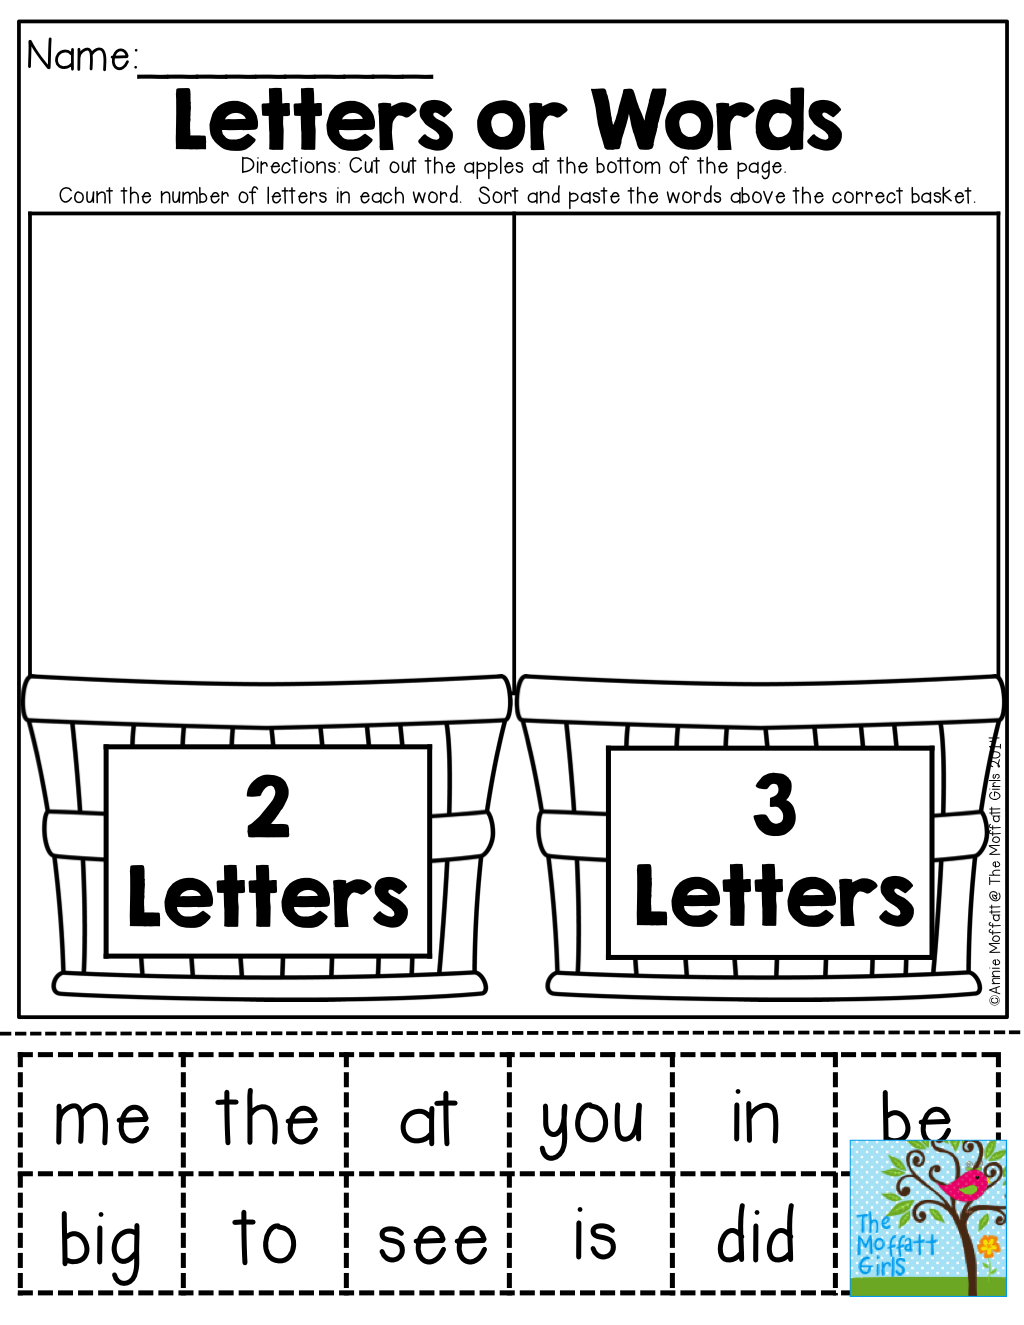 2 Letter And 3 Letter Sight Words Cut And Paste Tons Of Back To School Printables